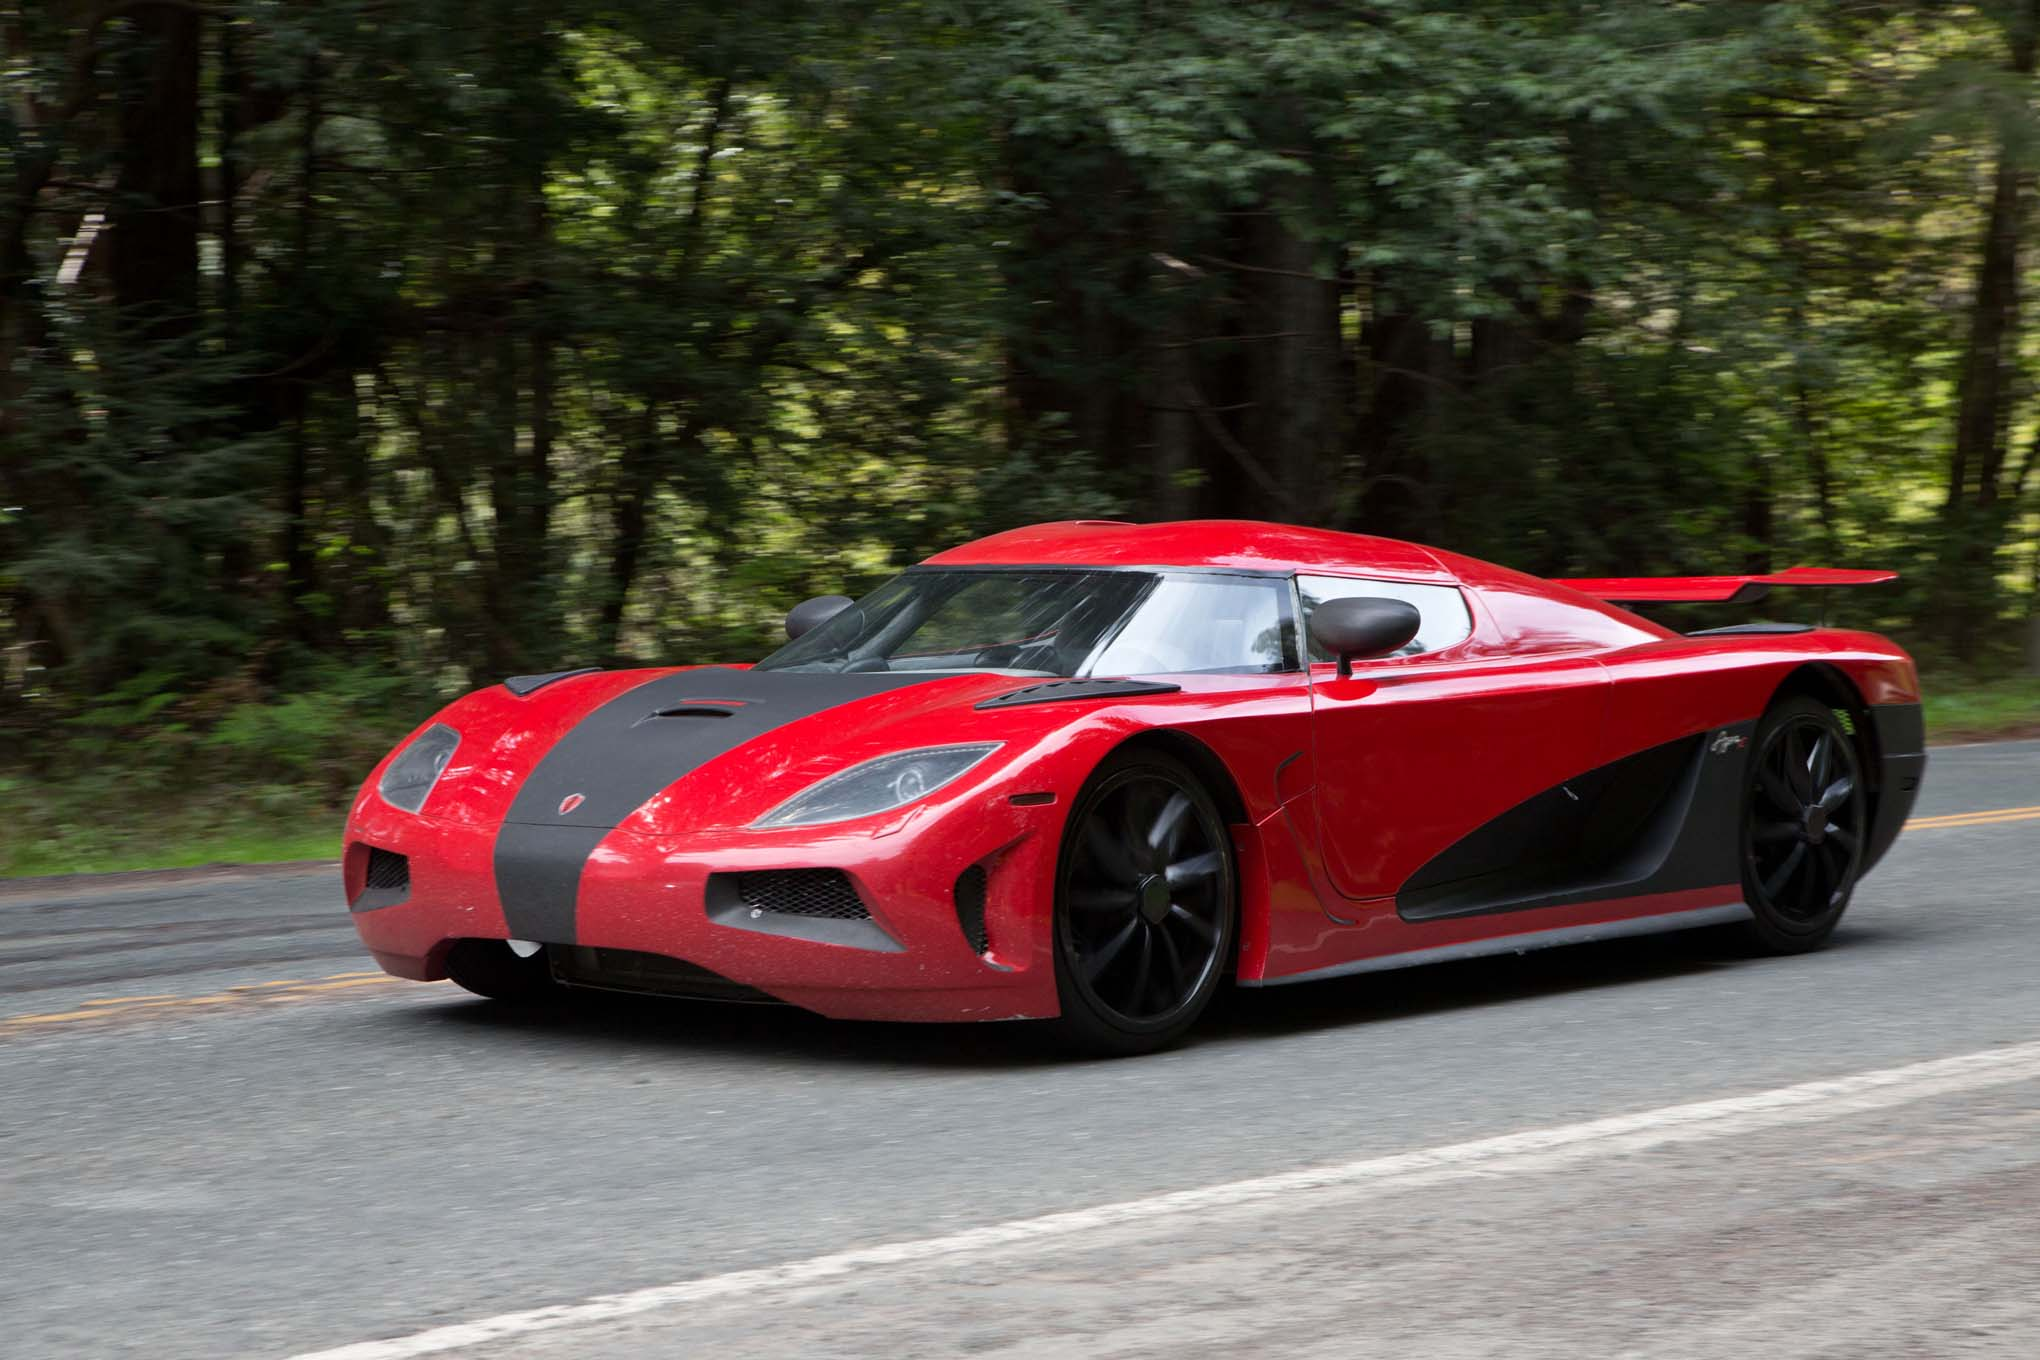 Photo: 2015 Koenigsegg Agera R